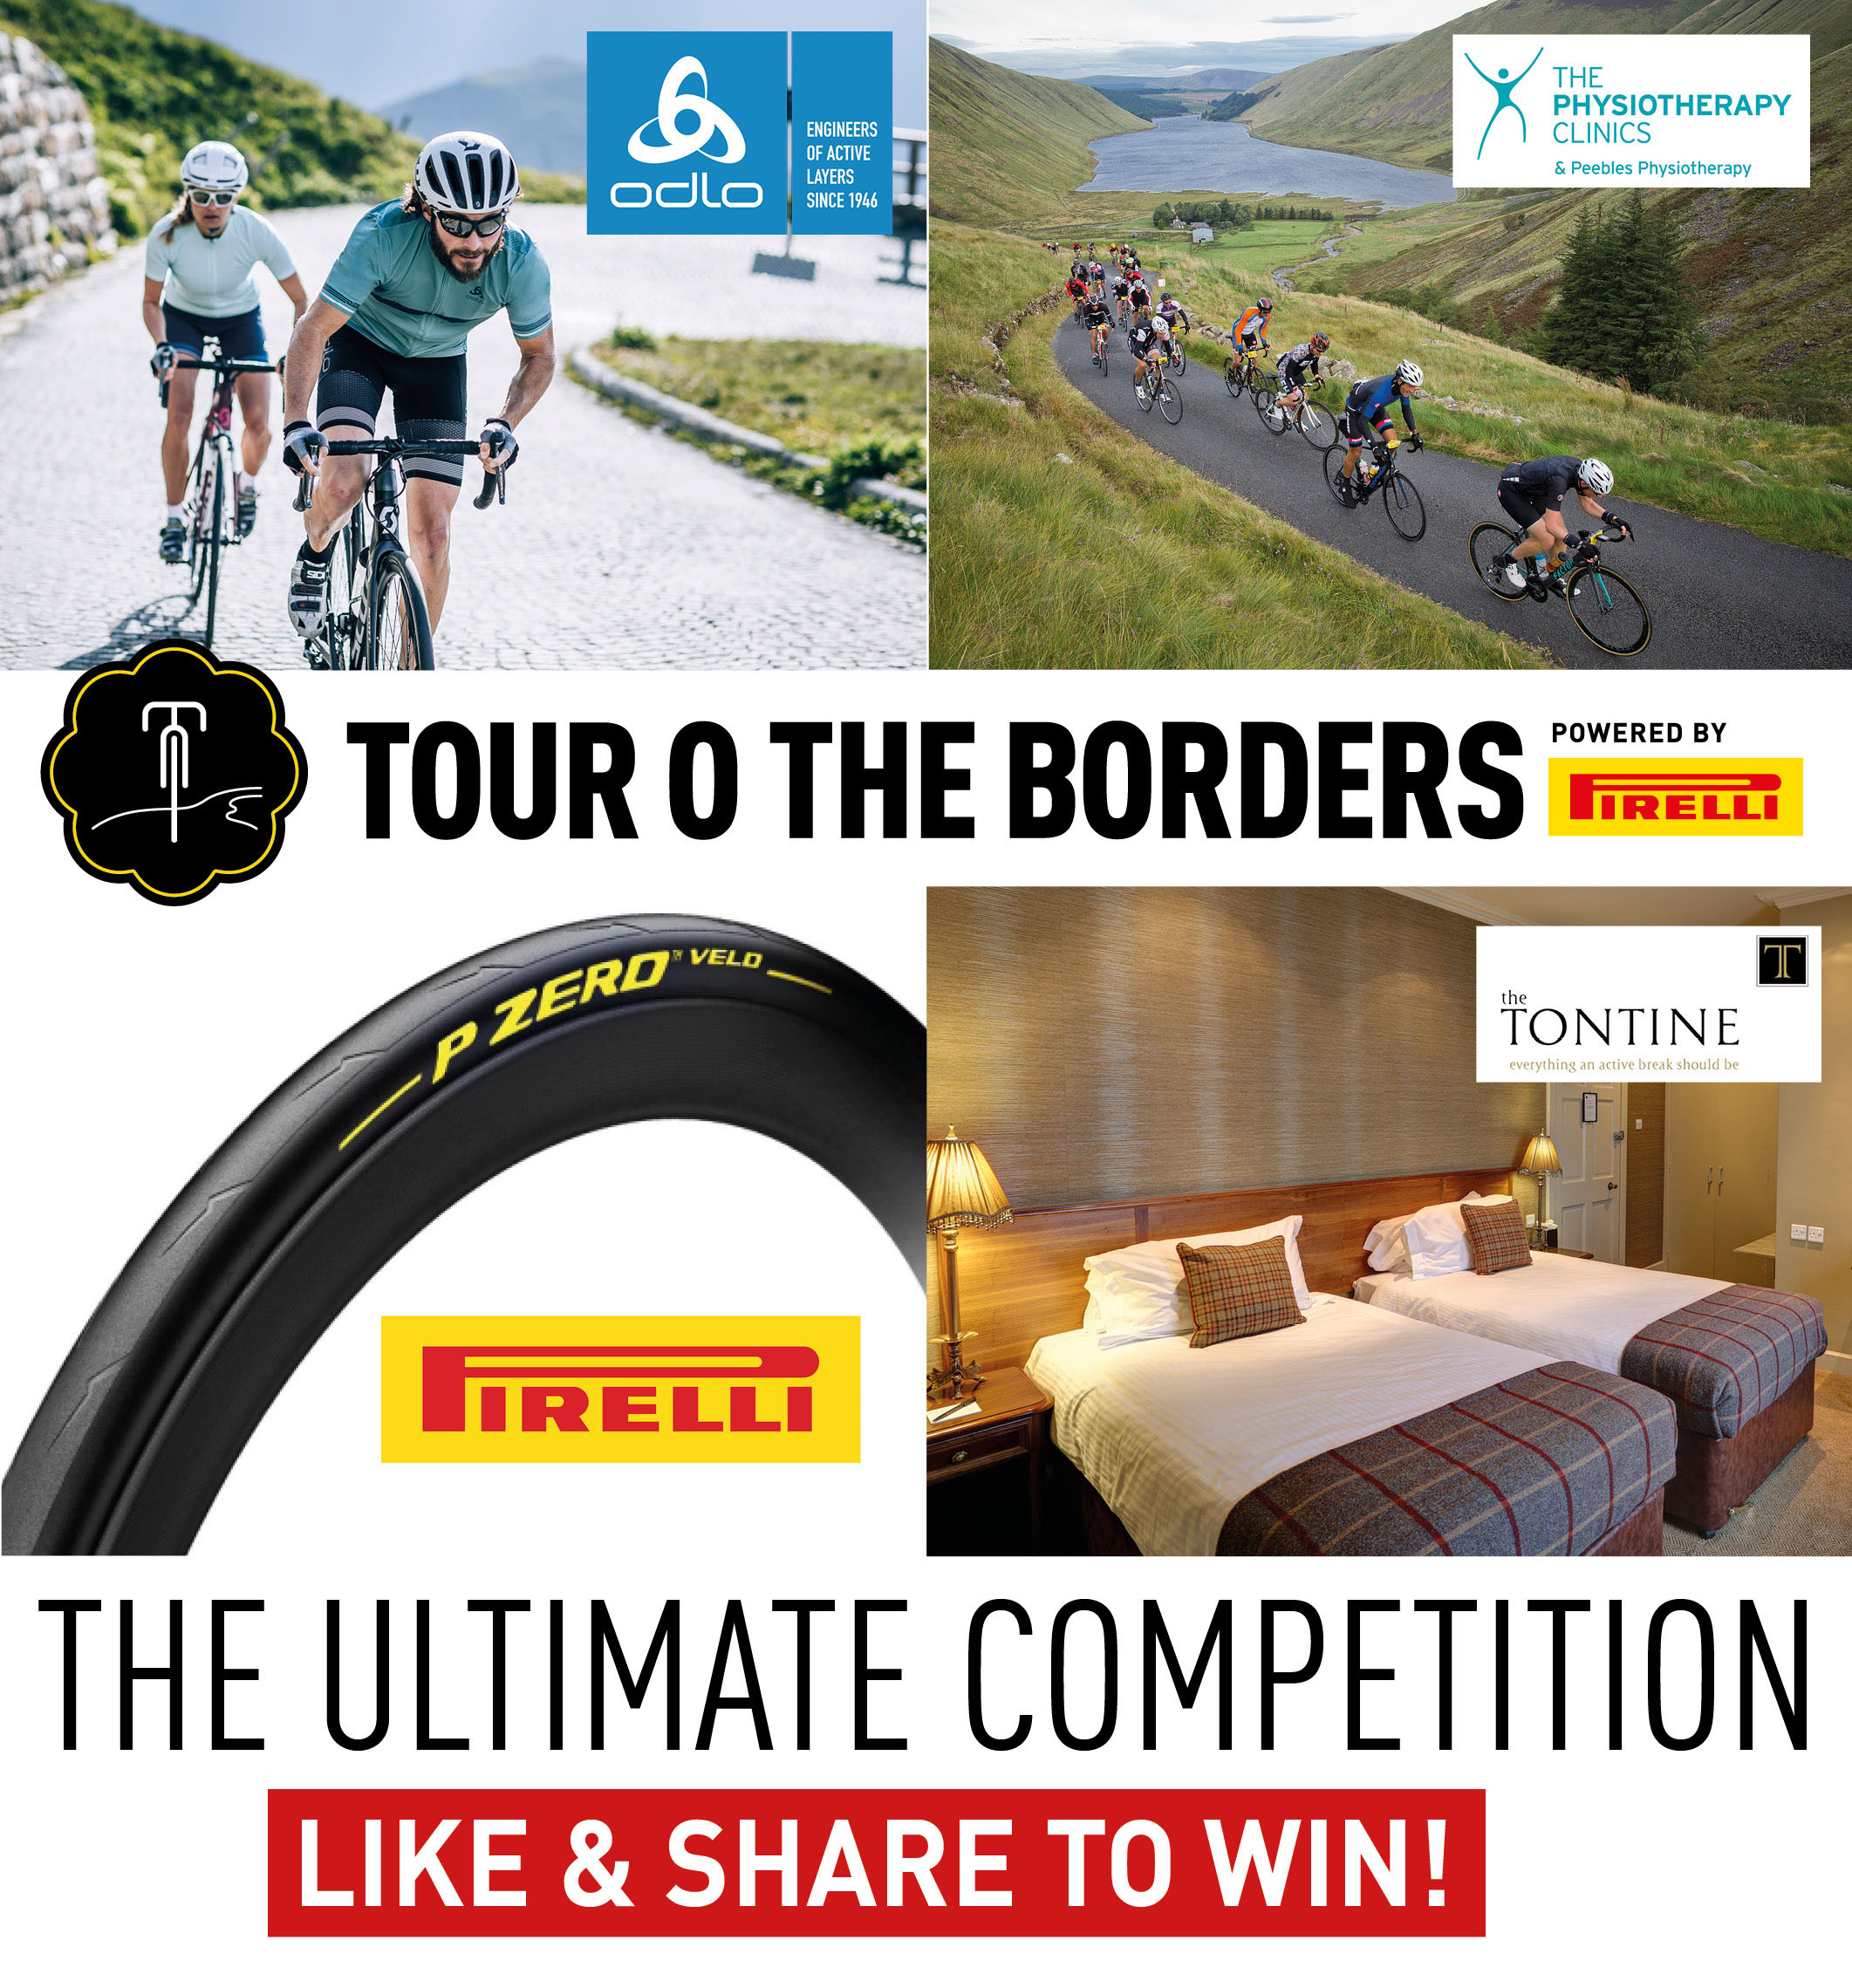 Tour O The Borders 2019 Competition